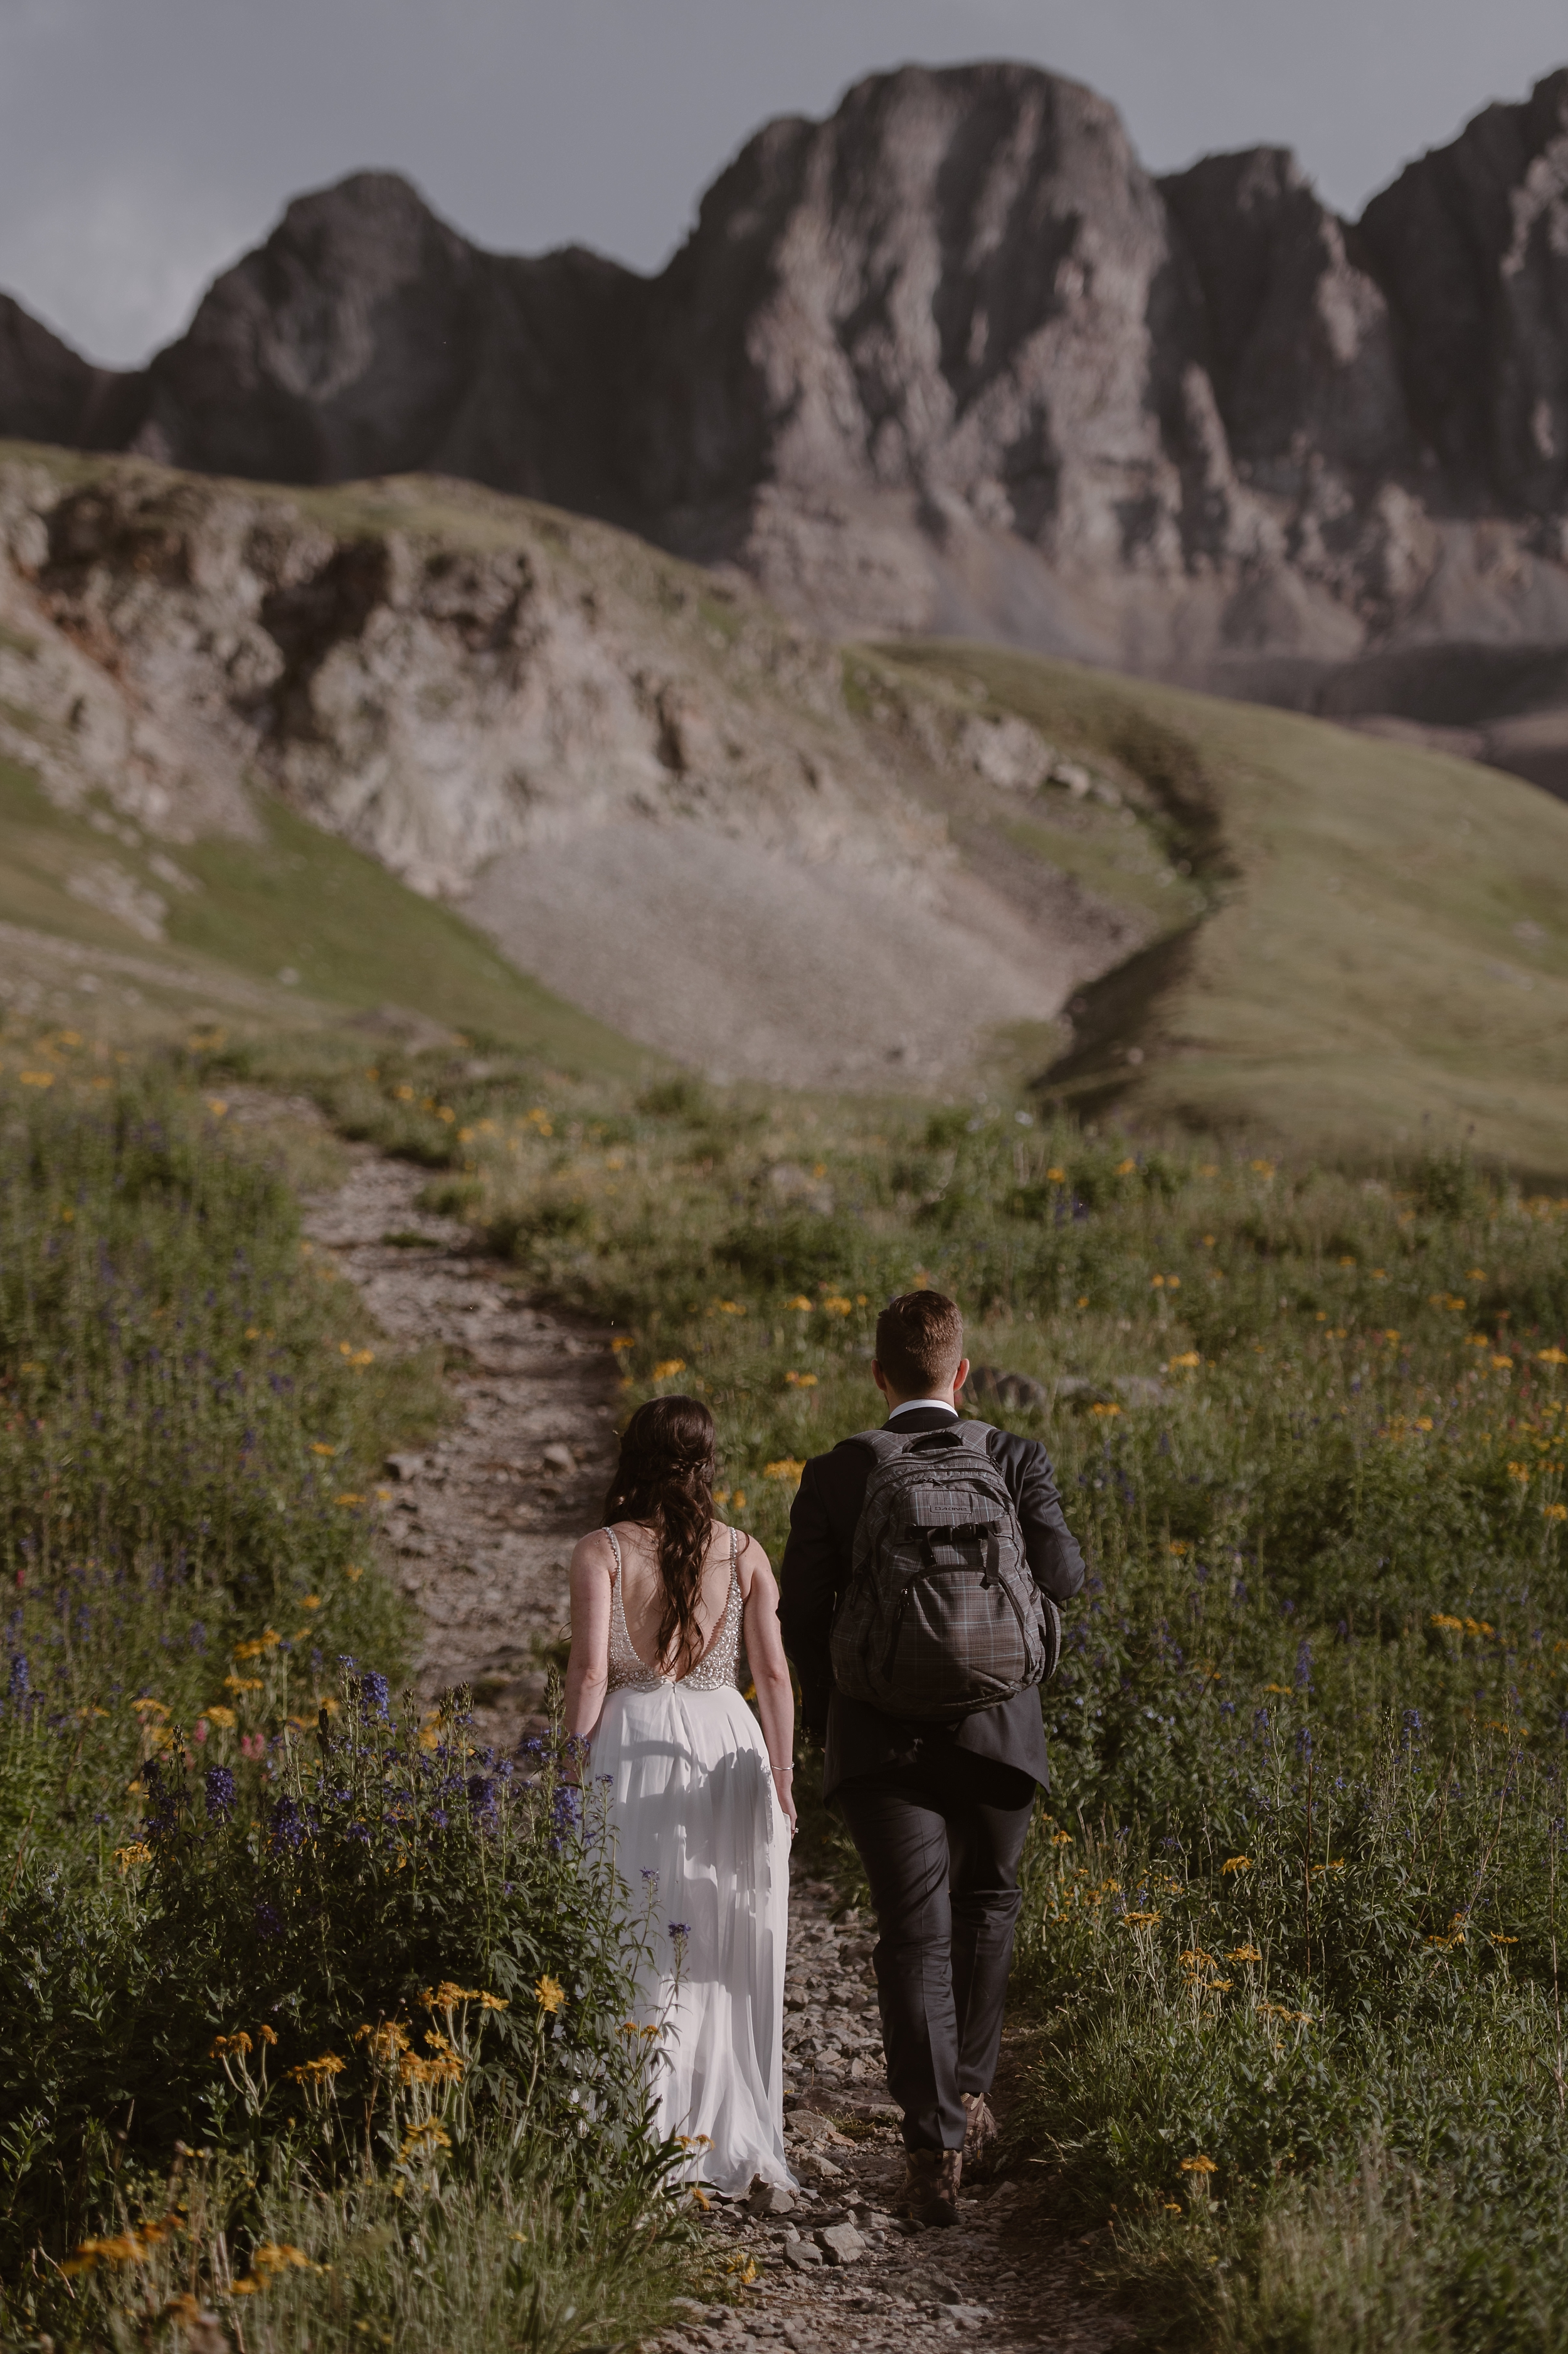 With the storm clear, Katie and Logan (the bride and room) take hands and walk up the trail toward the top of the mountain. Logan, carrying a backpack over his suit, takes Katie's hand as they walk between a bloom of mountain wildflowers in these elopement pictures captured by Adventure Instead, an elopement wedding photographer.